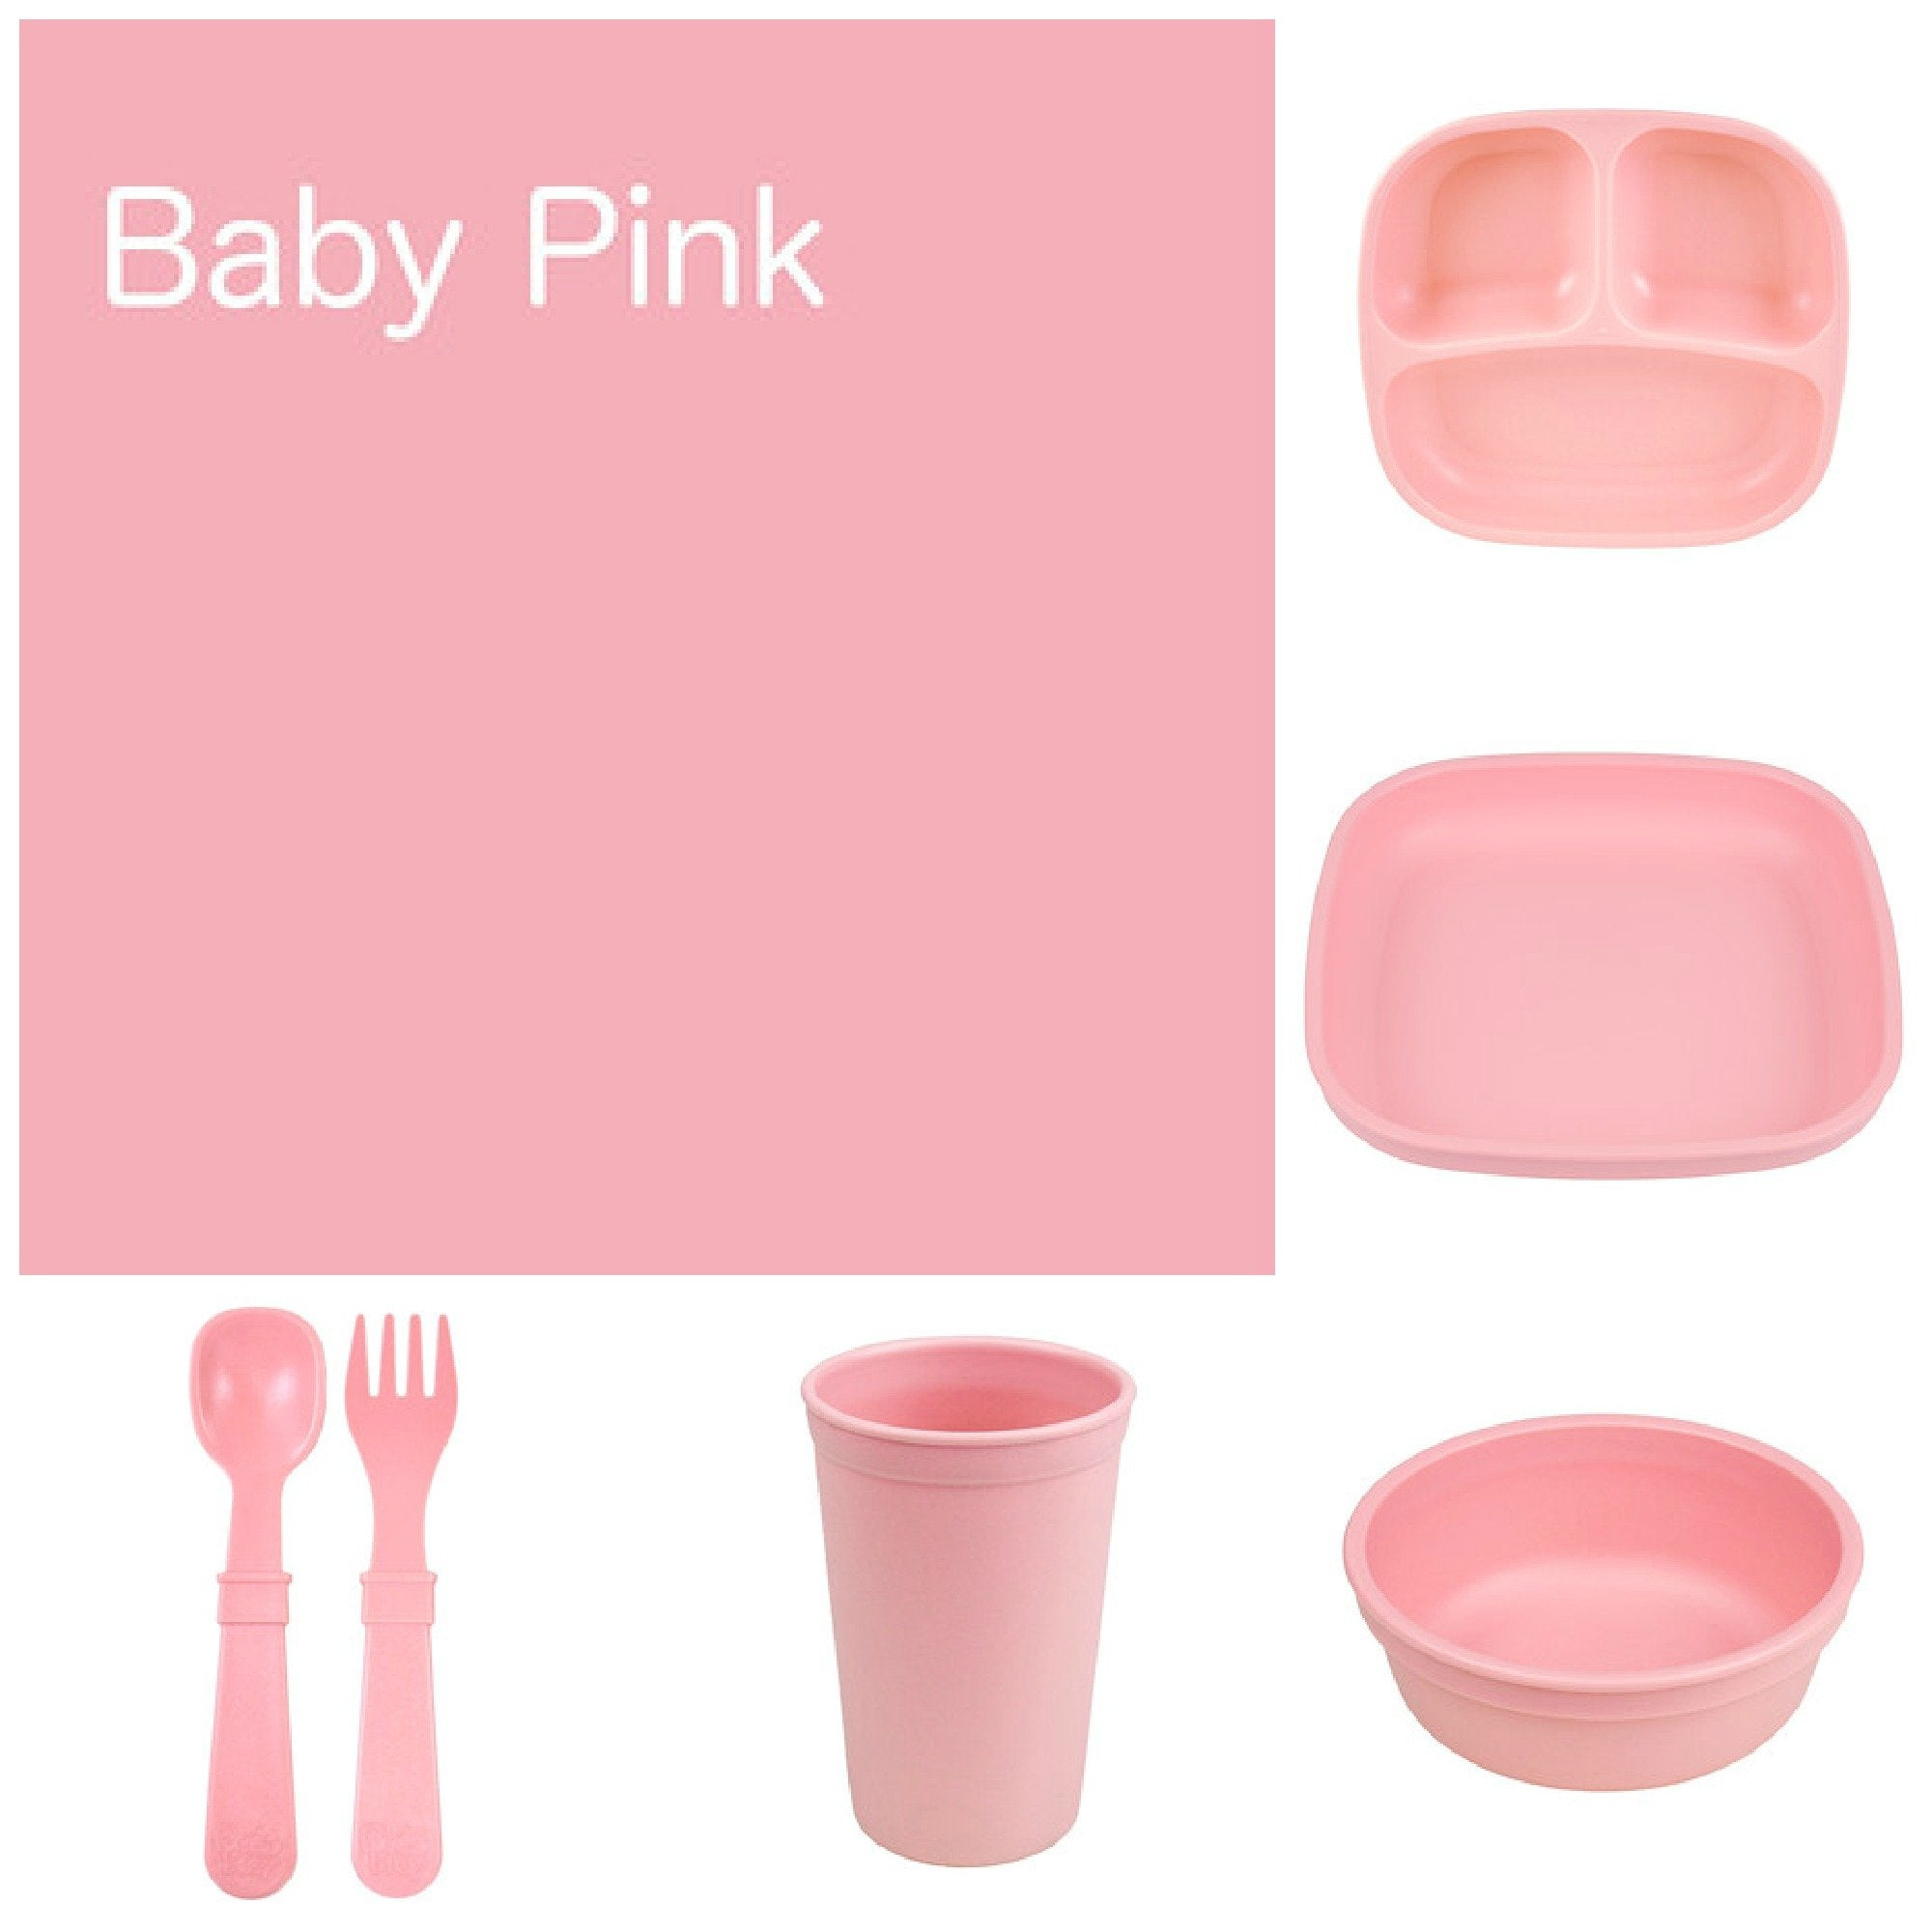 Re-Play Recycled Dinner Set - Baby Pink